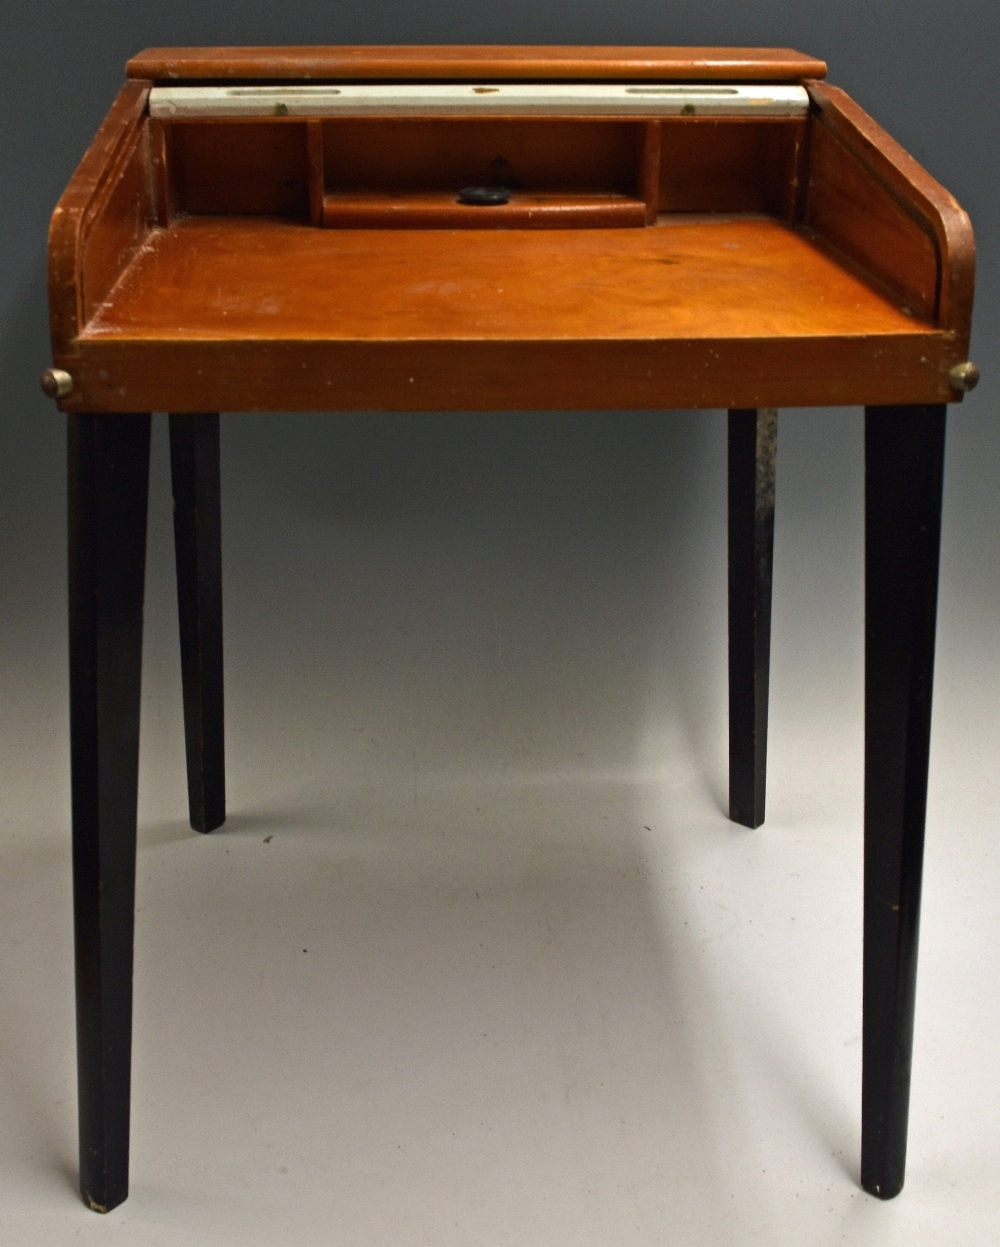 Vintage Childs Writing Desk with roll top and removable wooden legs, measur